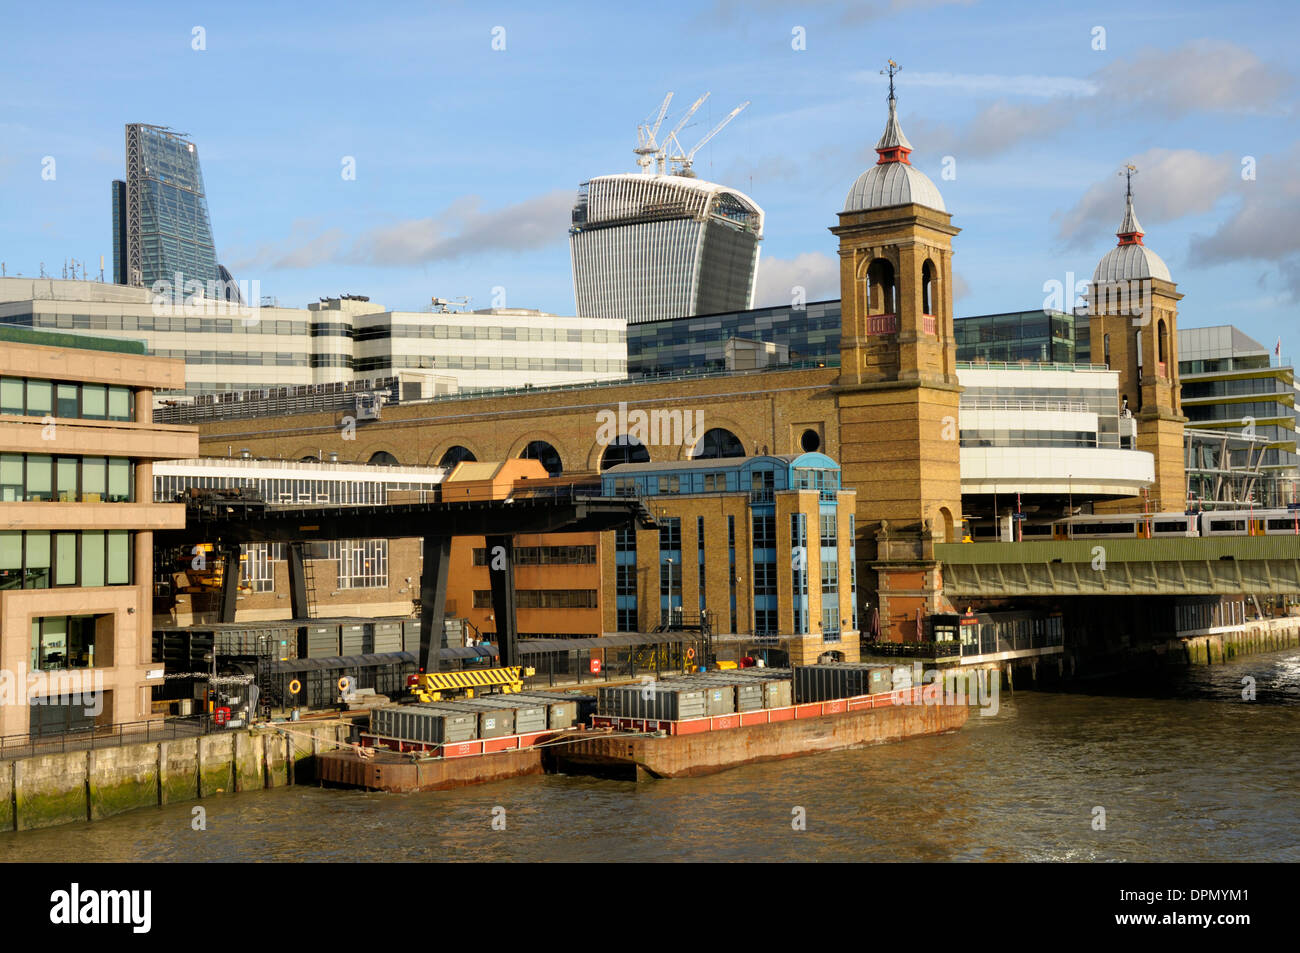 London, England, UK. Cannon Street Station and Railway Bridge over the River Thames - Stock Image